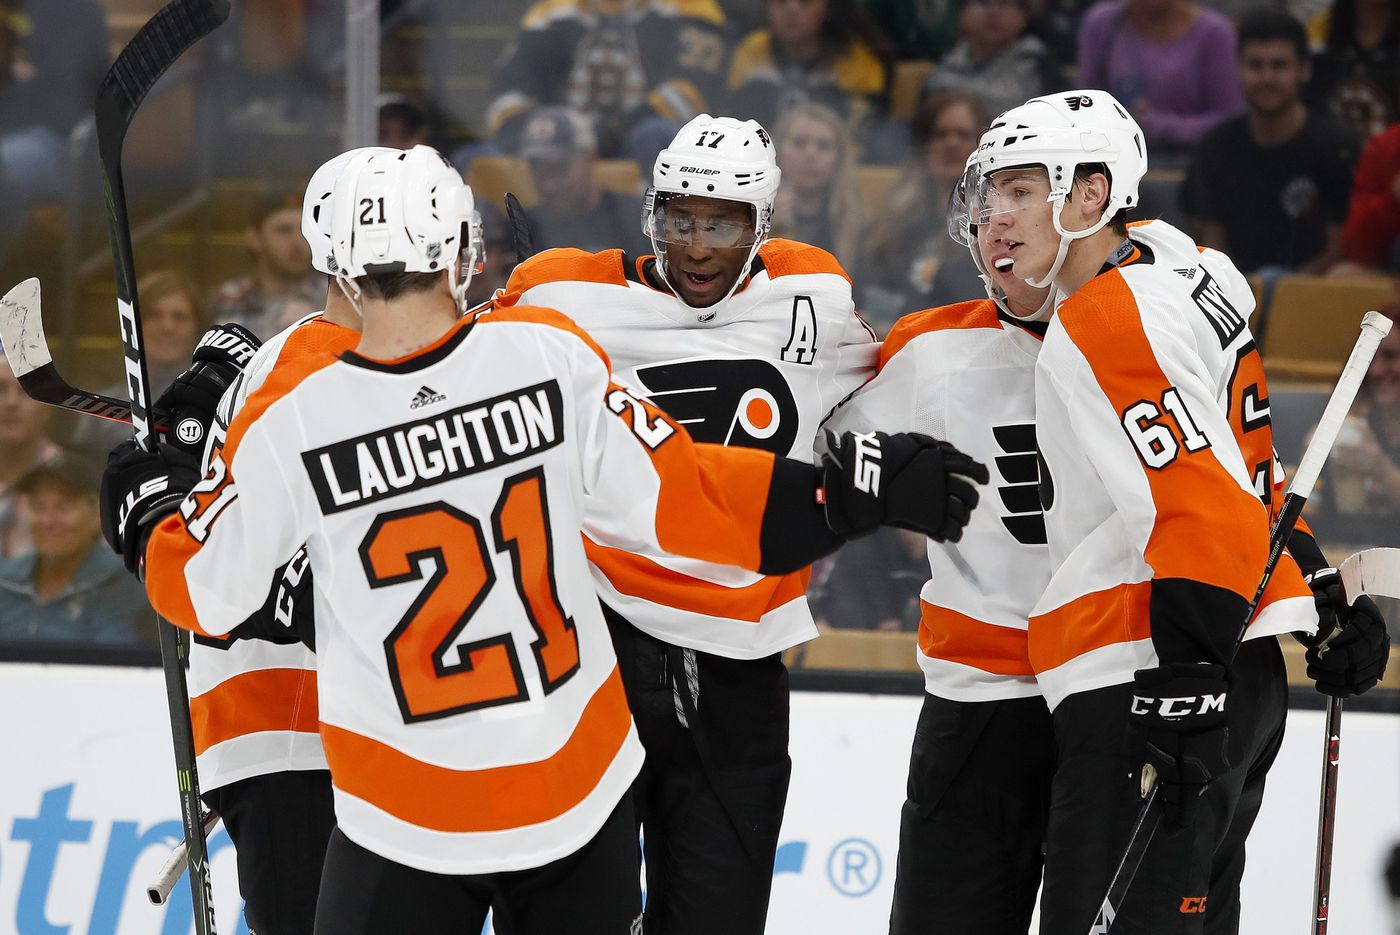 Wayne Simmonds and Sean Couturier look good in Flyers' preseason debuts